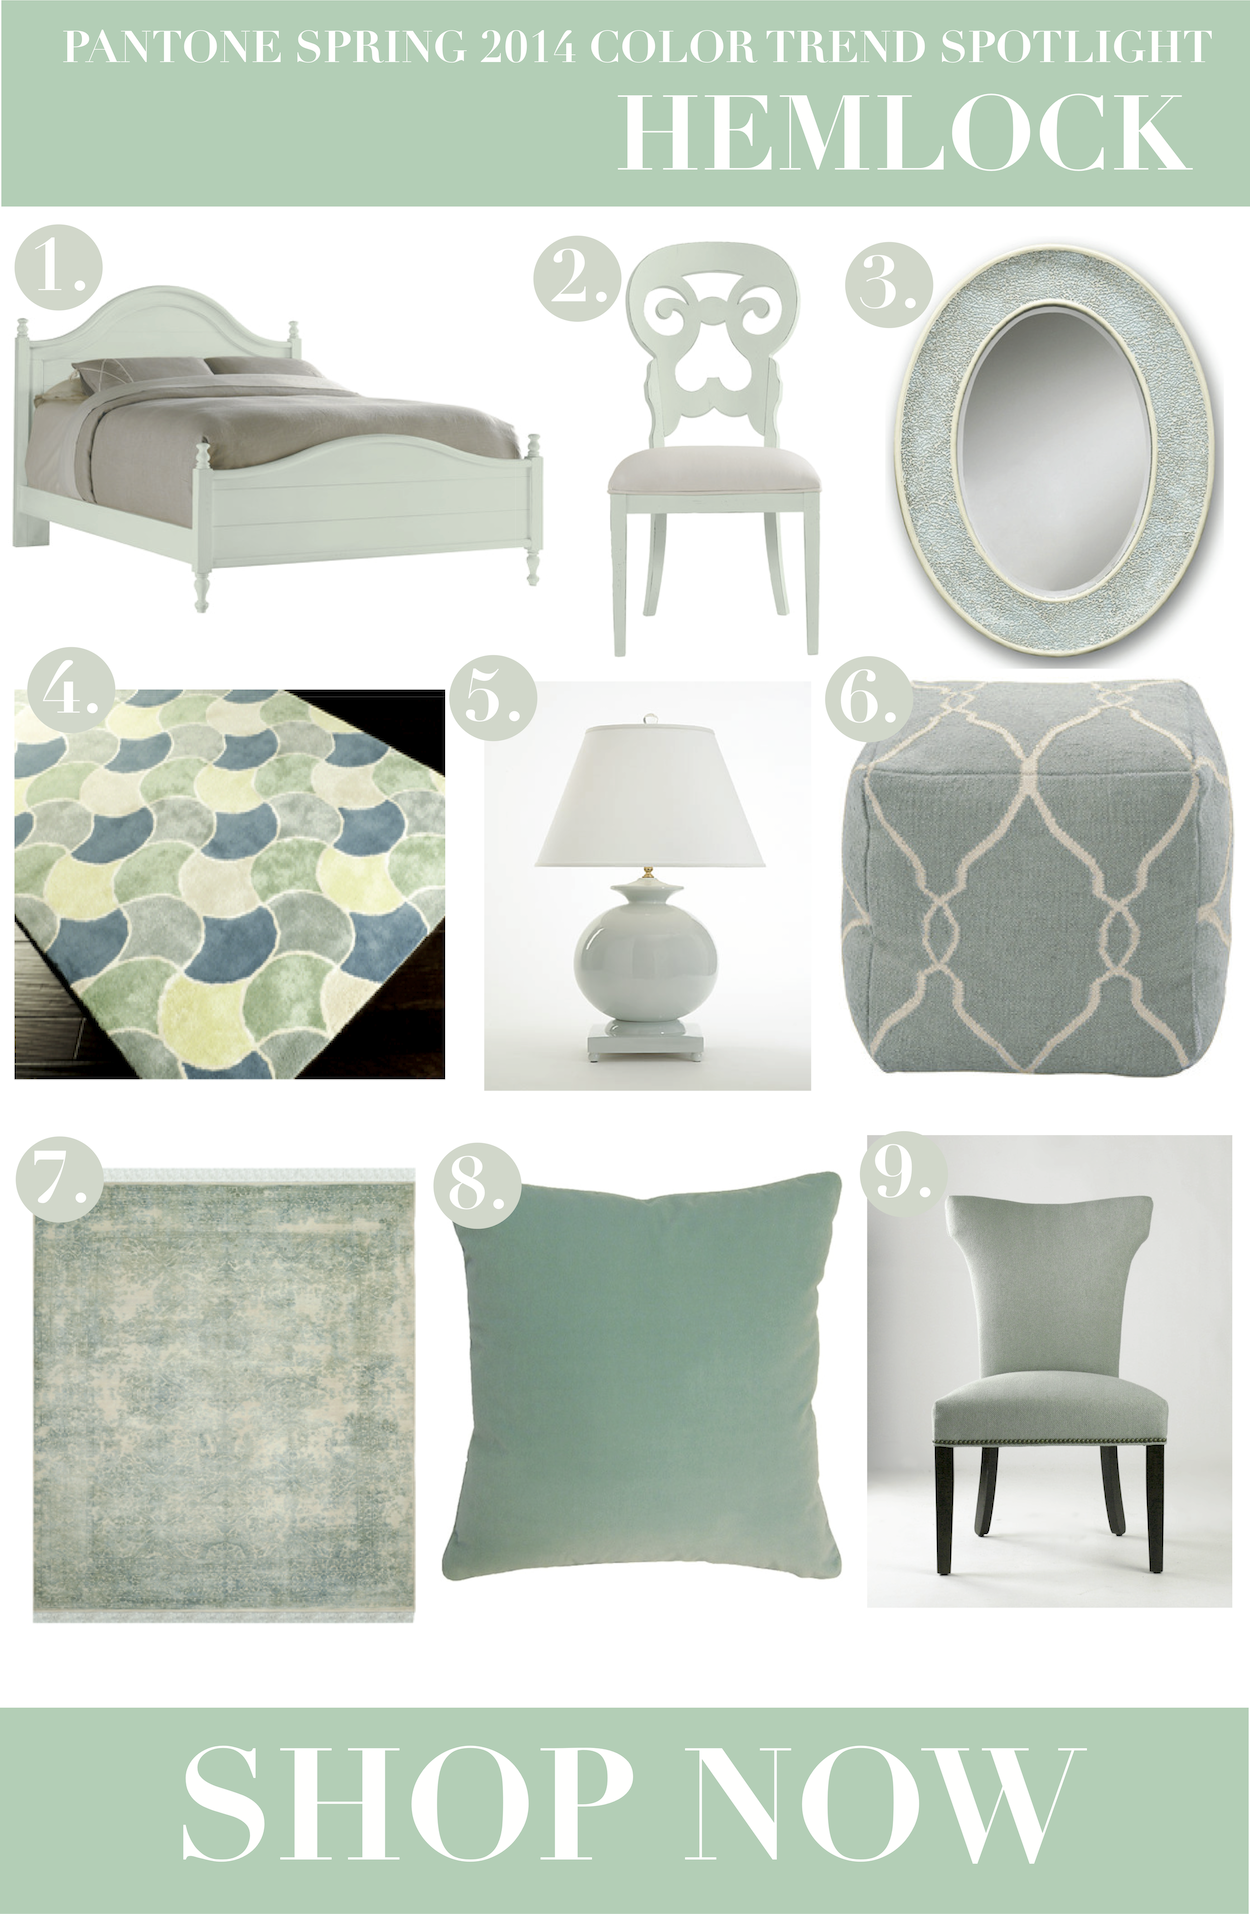 spring 2014 home decor color trend hemlockwhen it comes to home